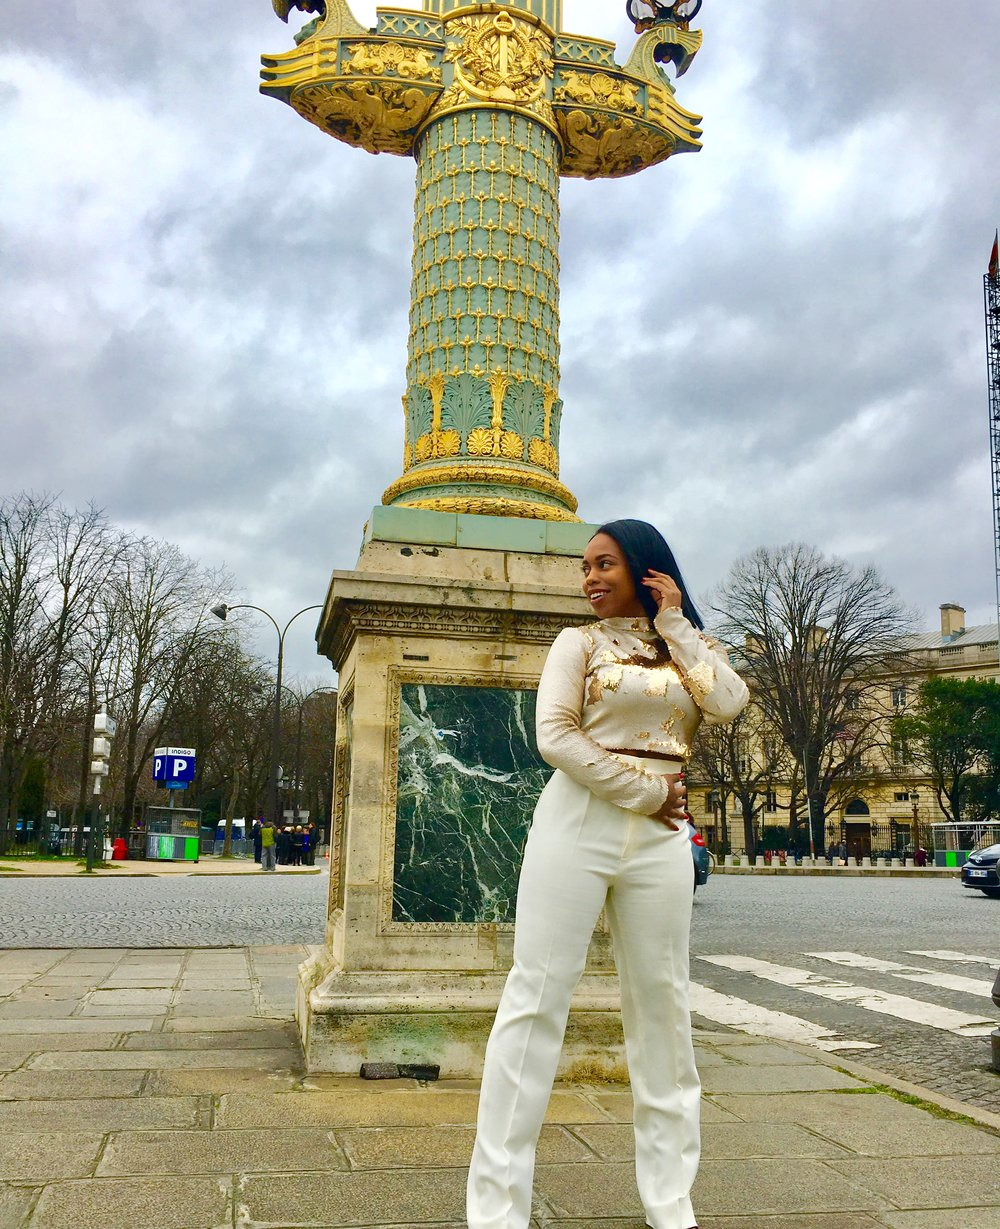 Paris White Outfit Solo.jpg